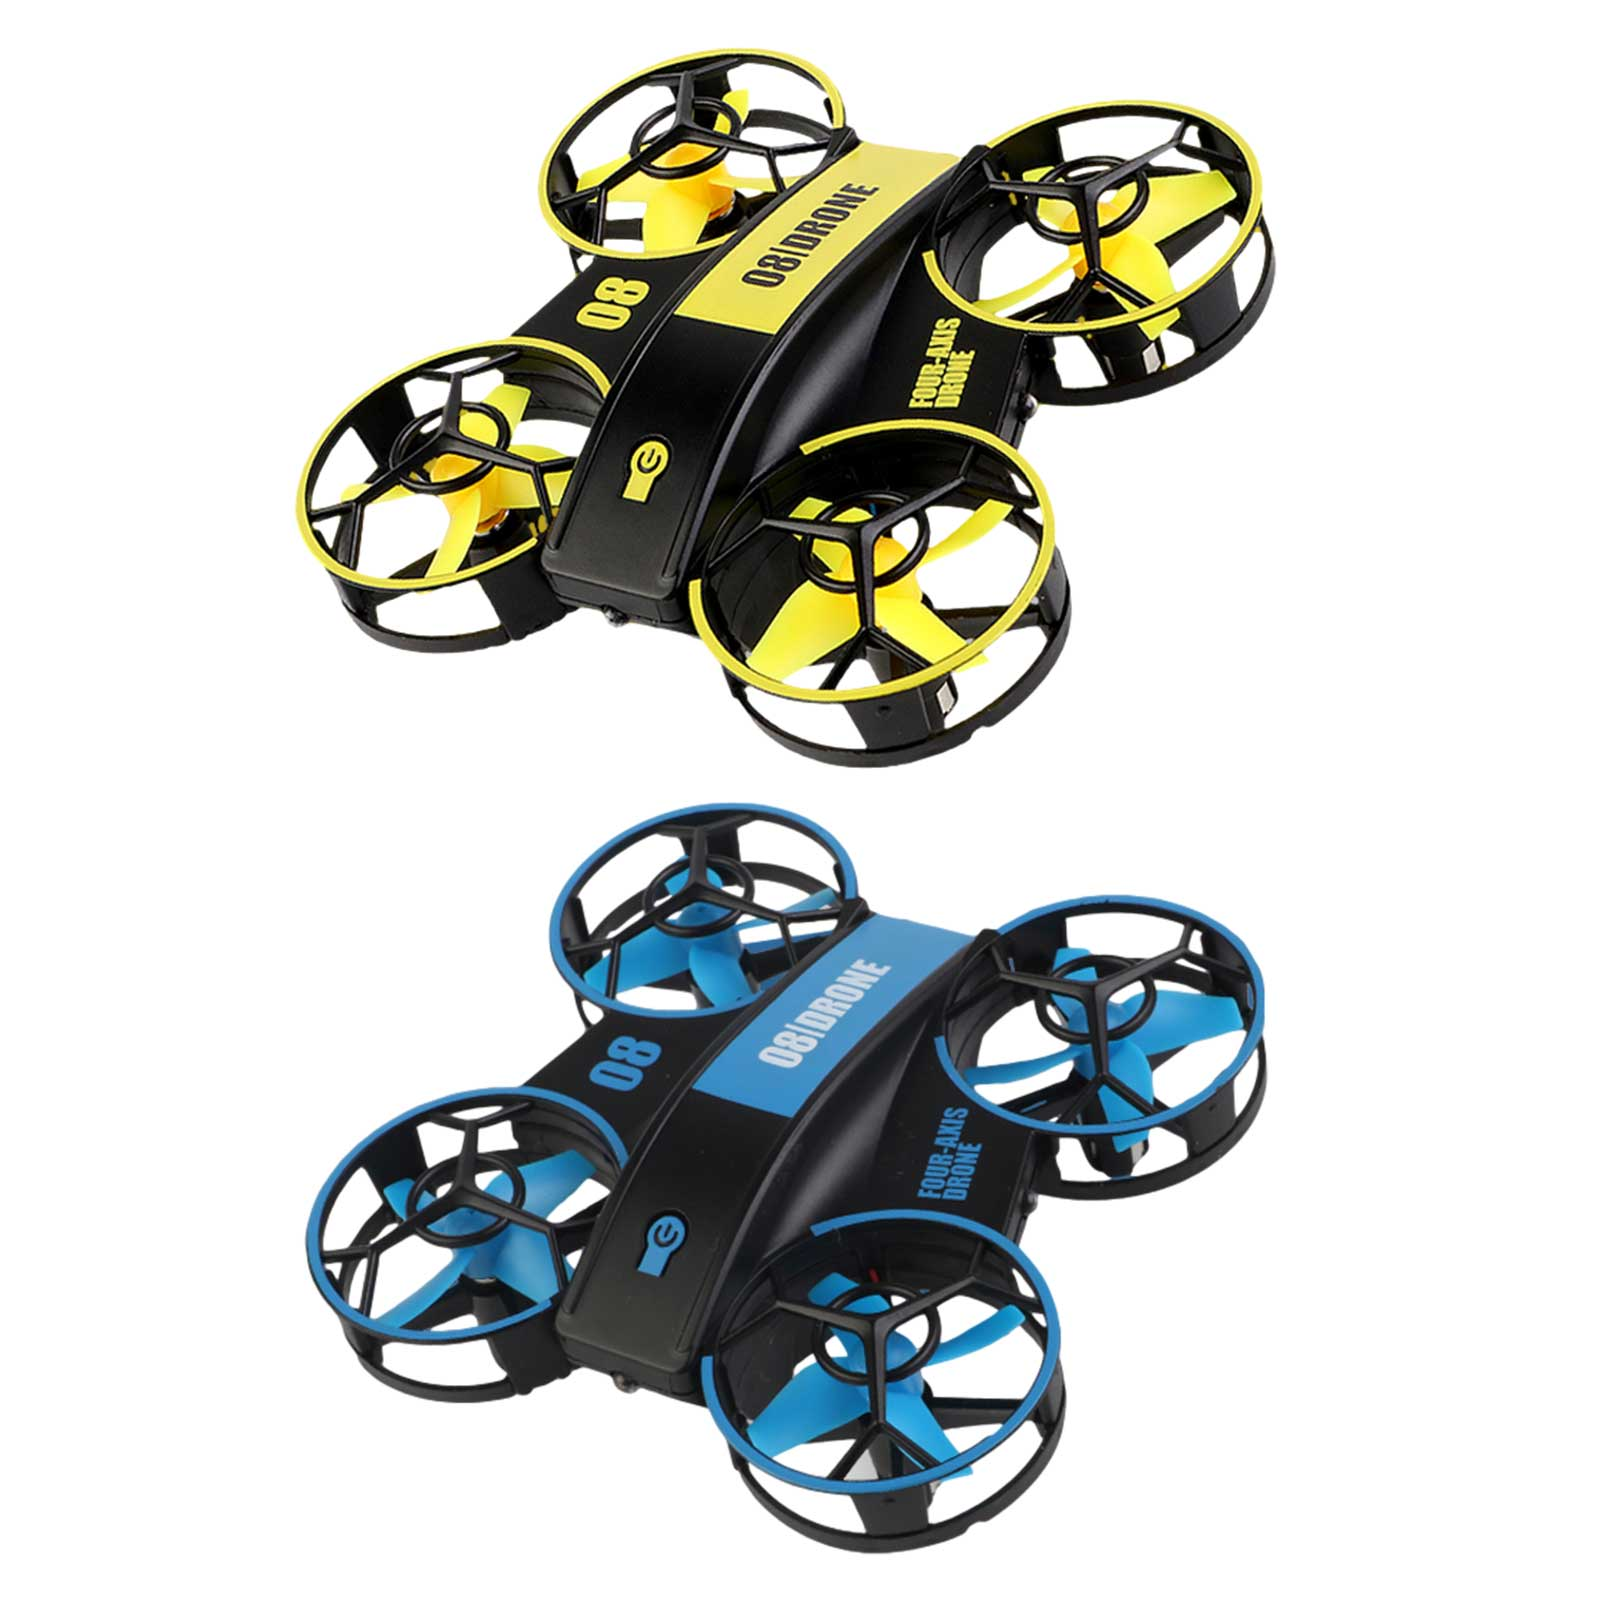 Quadcopter Mini Remote Control Quadcopter Infrared Controlled Drone Aircraft With LED Light Birthday Gift For Children Toys